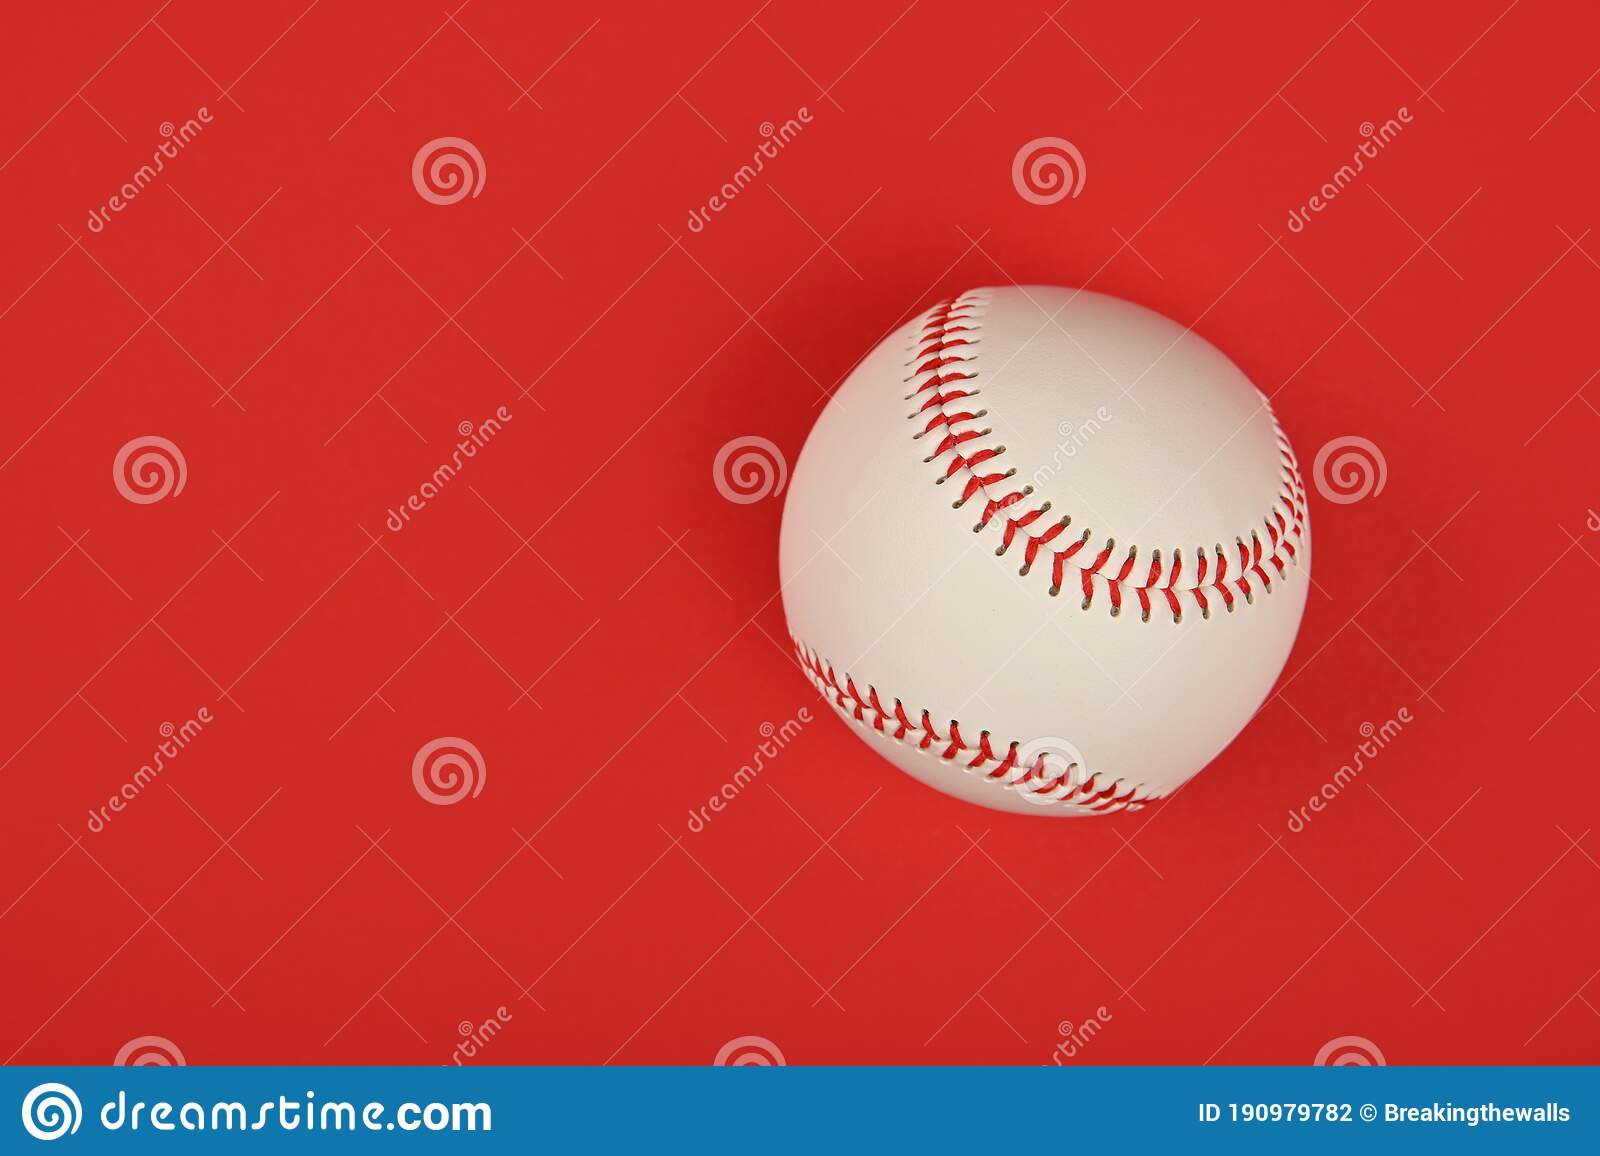 Close Up One Baseball Ball Over Red Stock Photo Image Of Threat Sports 190979782